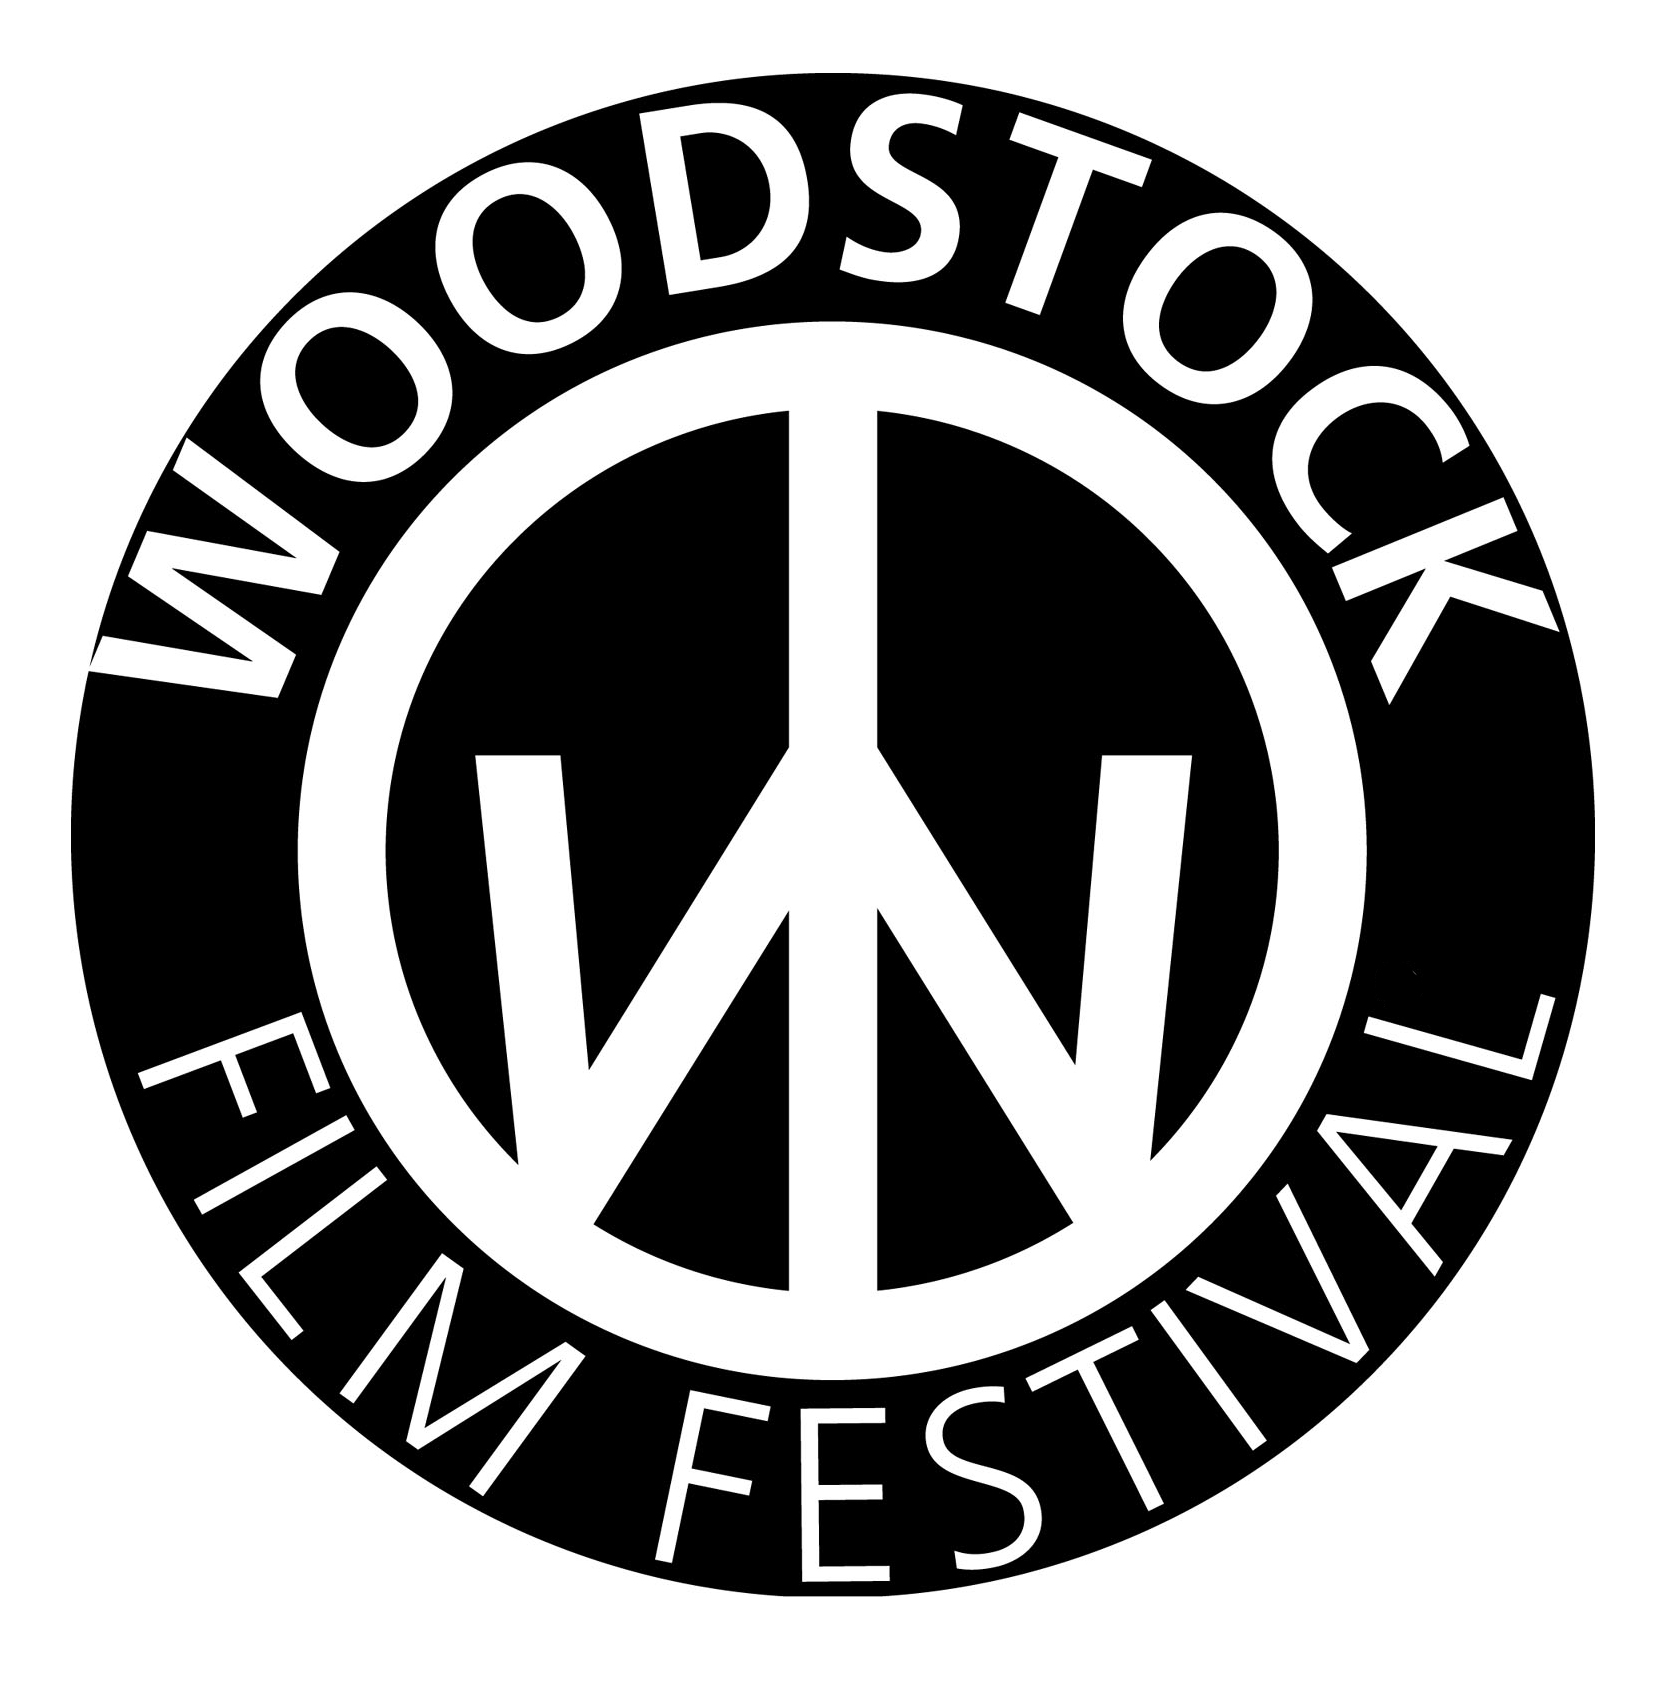 Woodstock Film Festival, Inc.